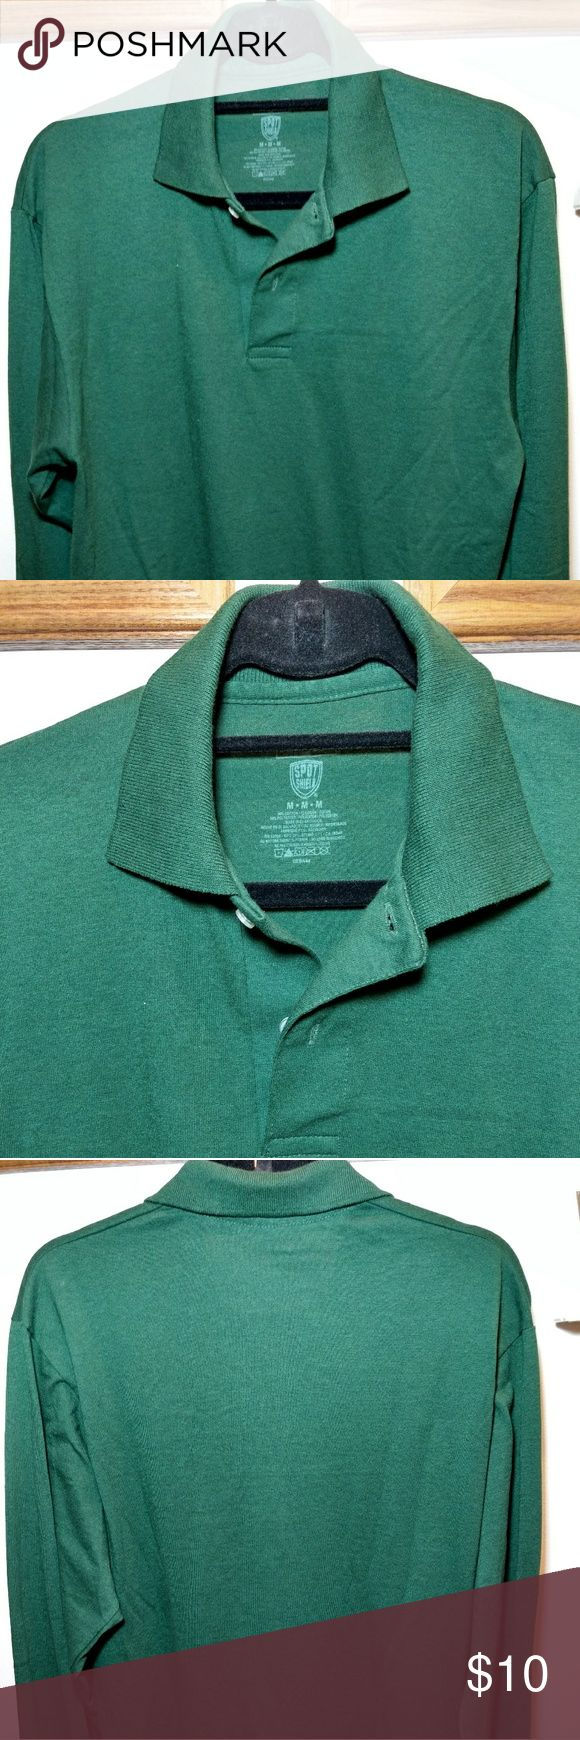 Jerzees hunt green long sleeves polo shirt. Jerzees hunt green long sleeves polo shirt. Easy and comfortable shirt. A few speckles of white lower front right. Barely noticeable. Pictured. Jerzees Shirts Polos